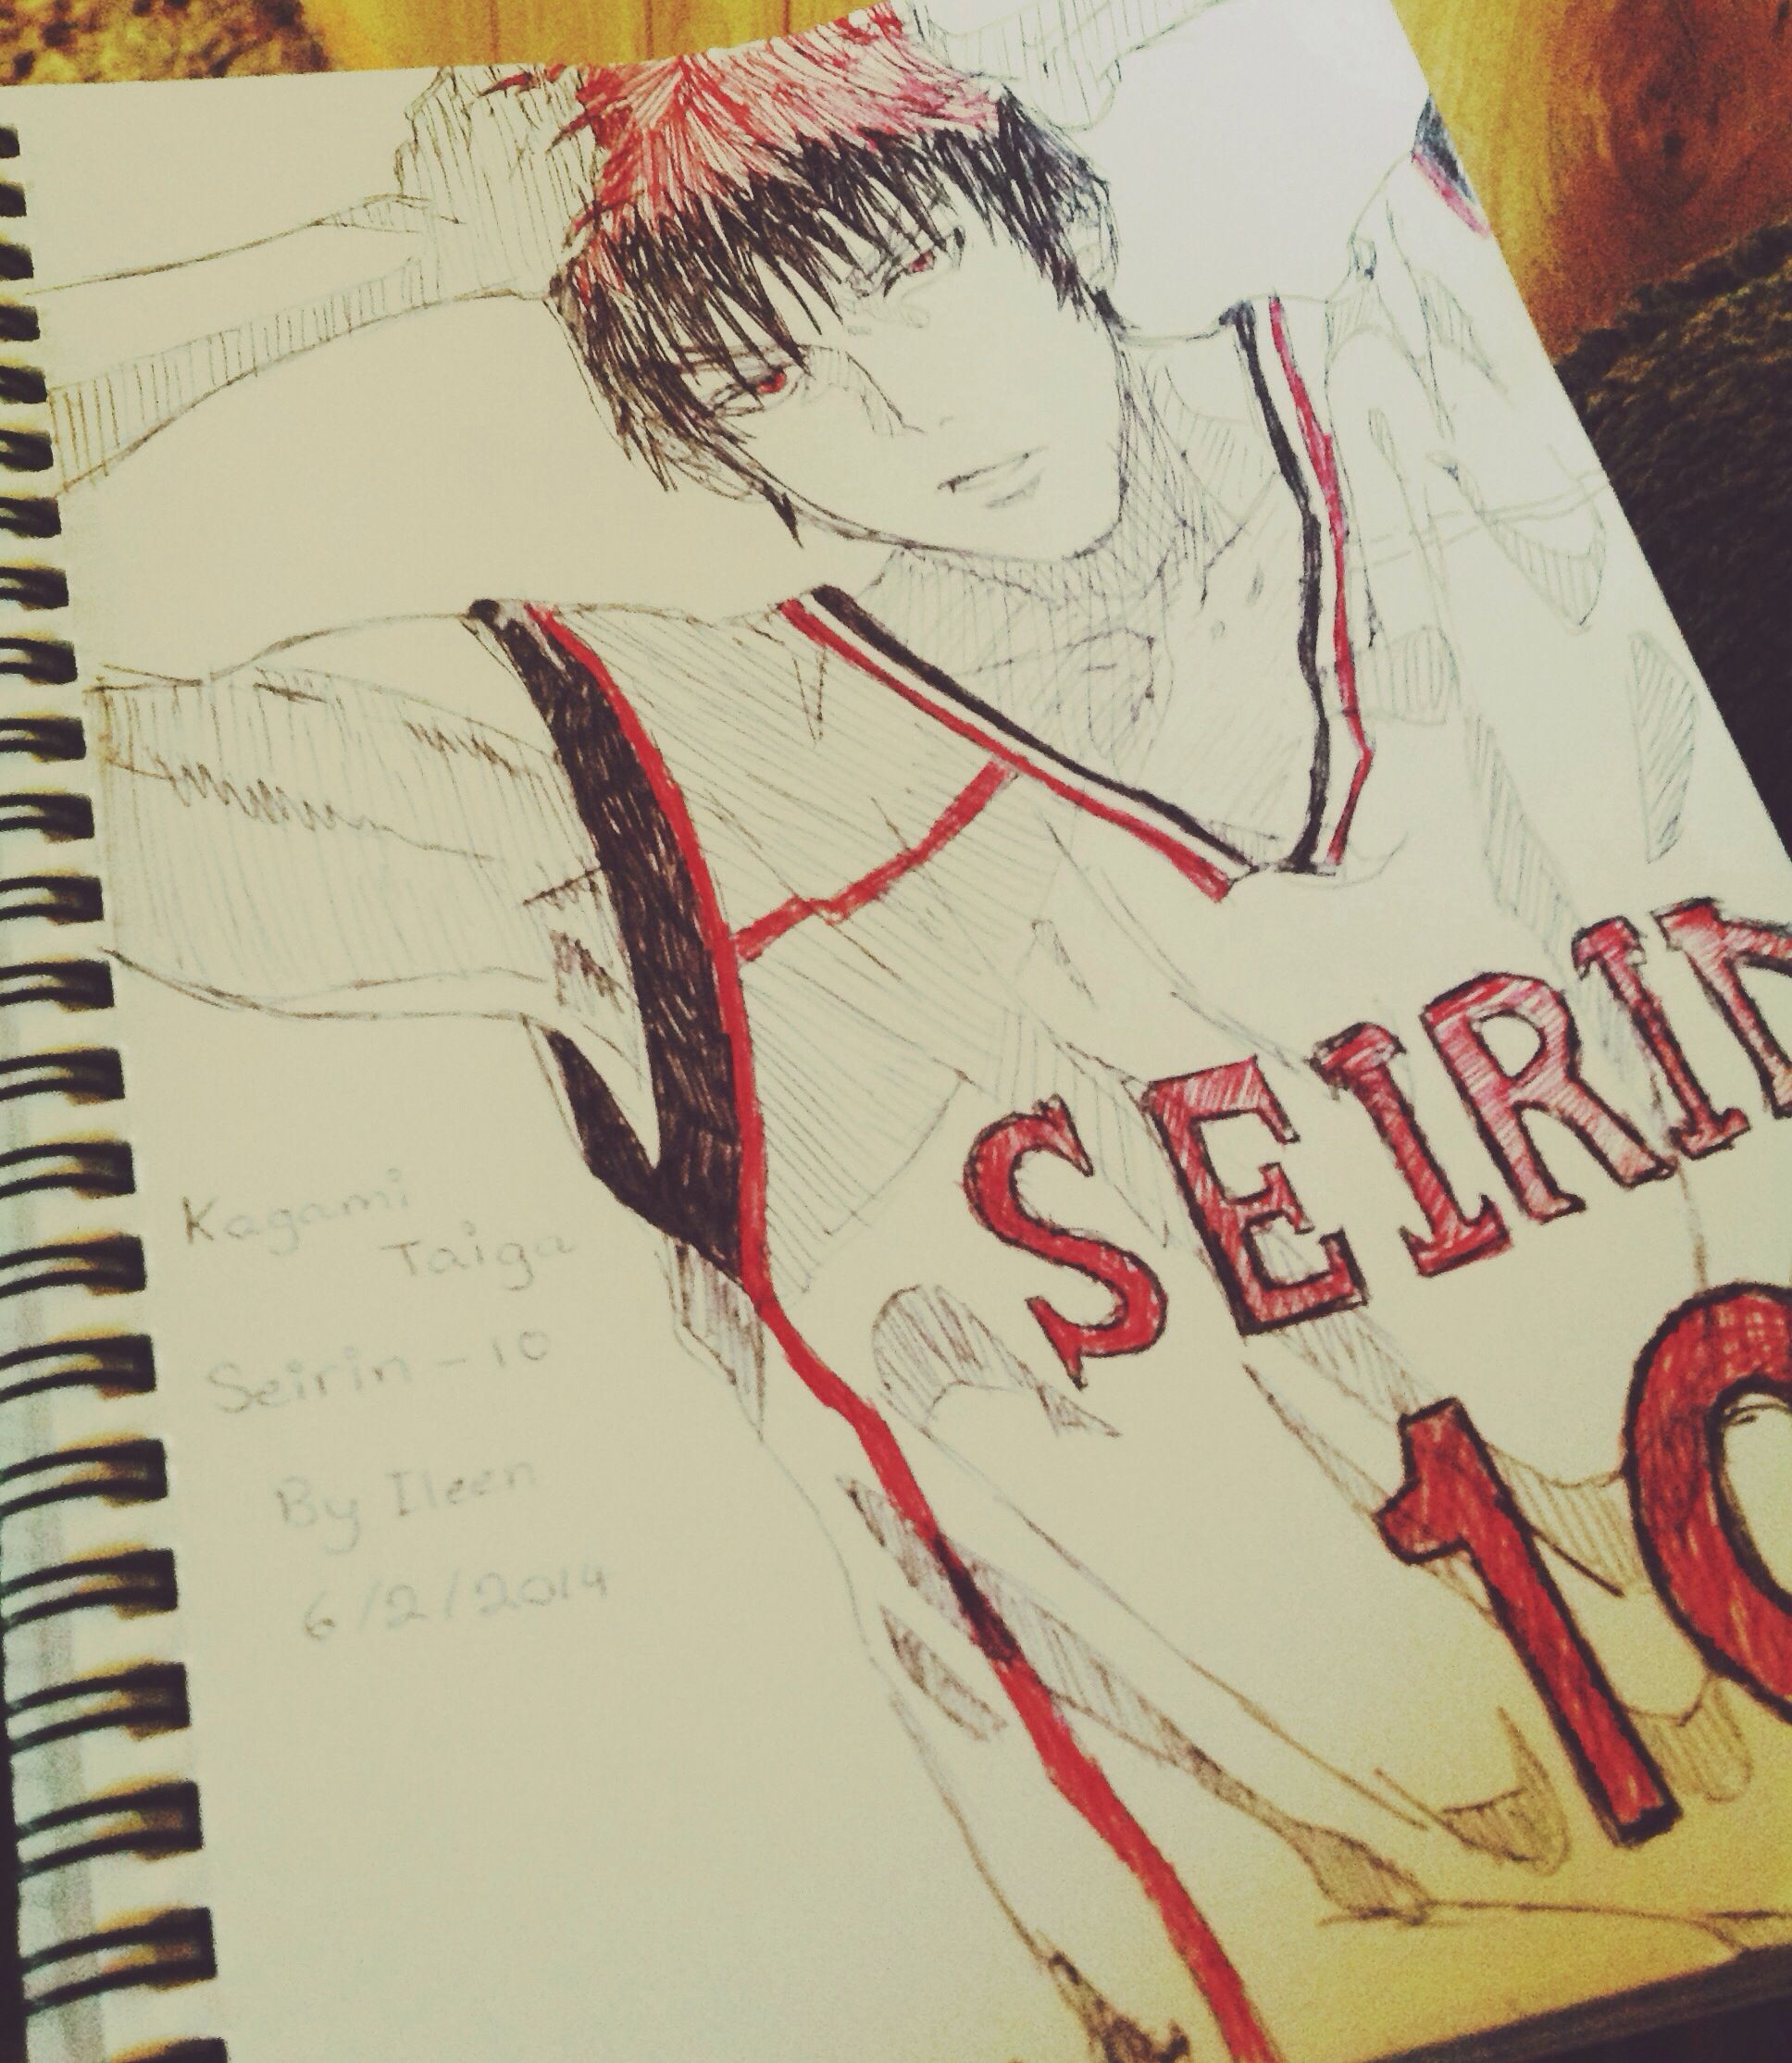 pen sketch black white and red anime character kagami taiga